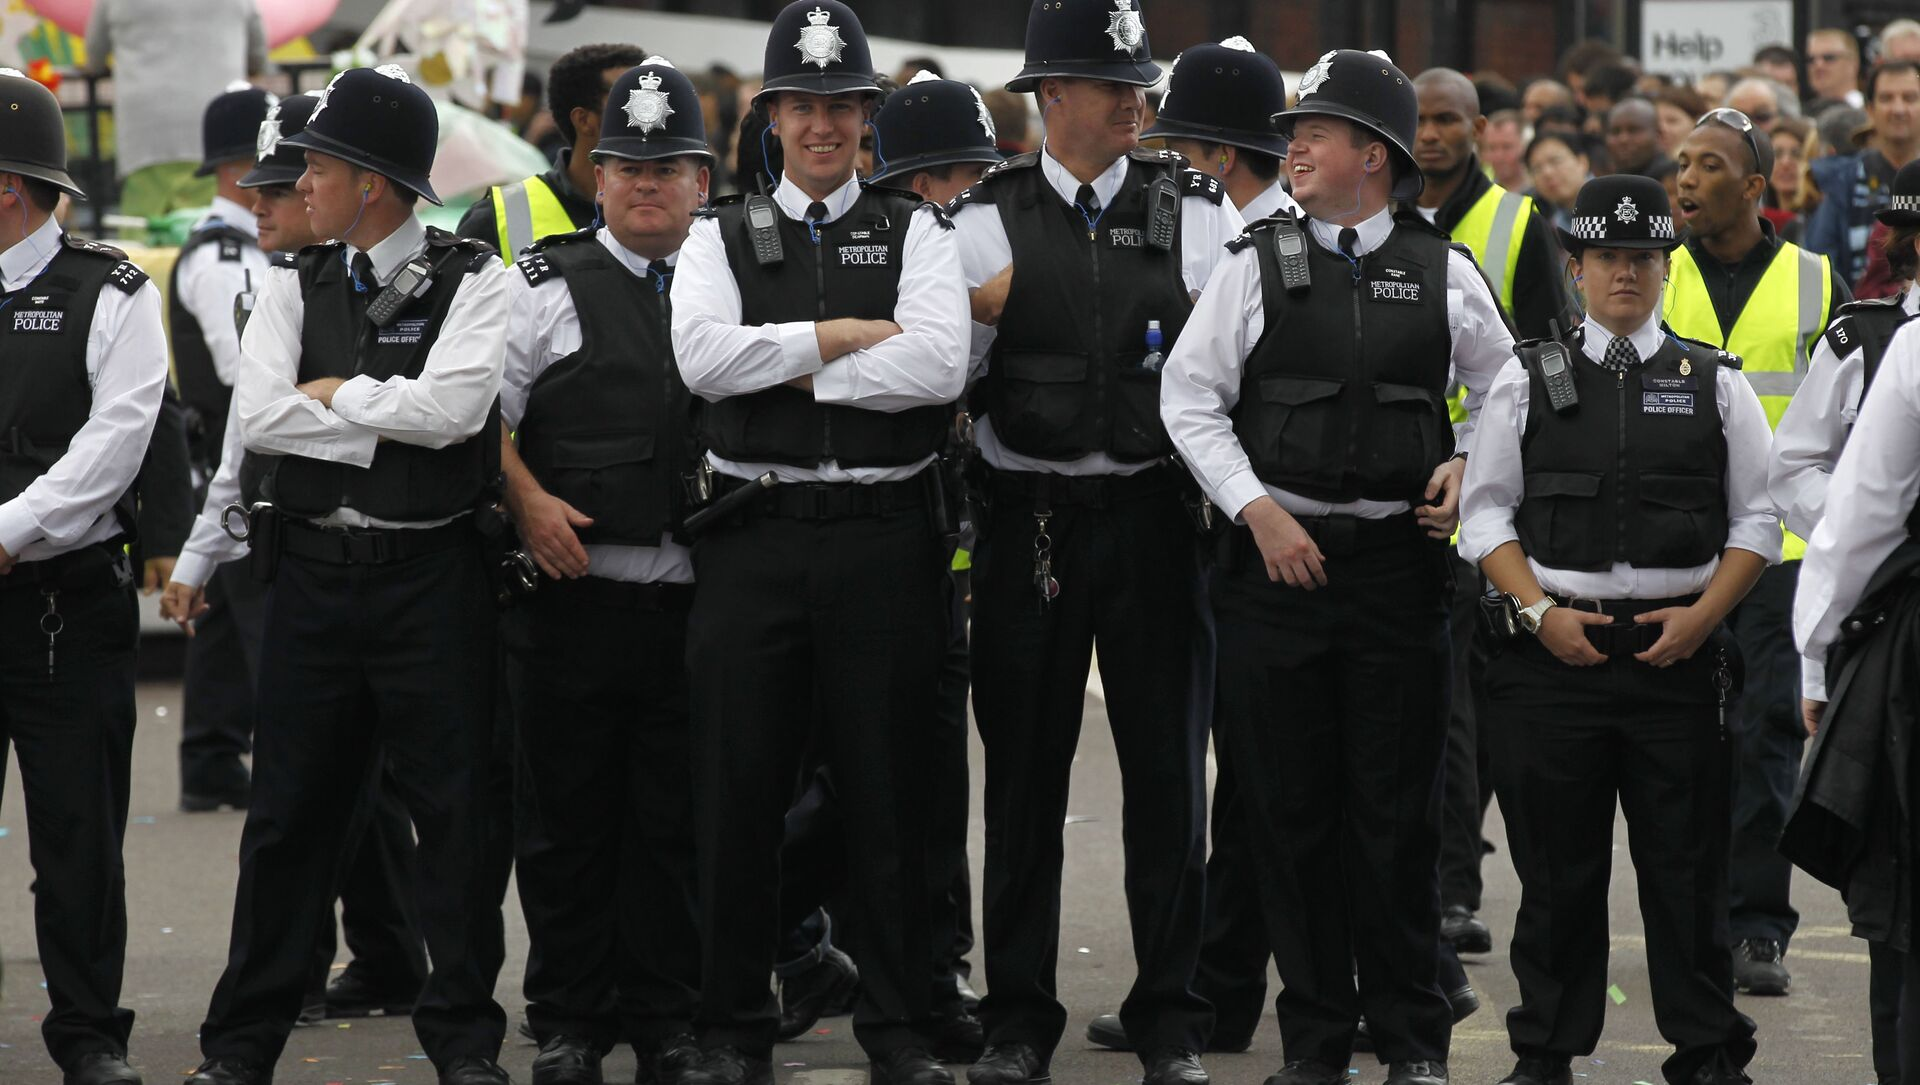 British police officers stand on duty during Europe's largest street festival, the Notting Hill Carnival in London, UK - Sputnik International, 1920, 28.07.2021